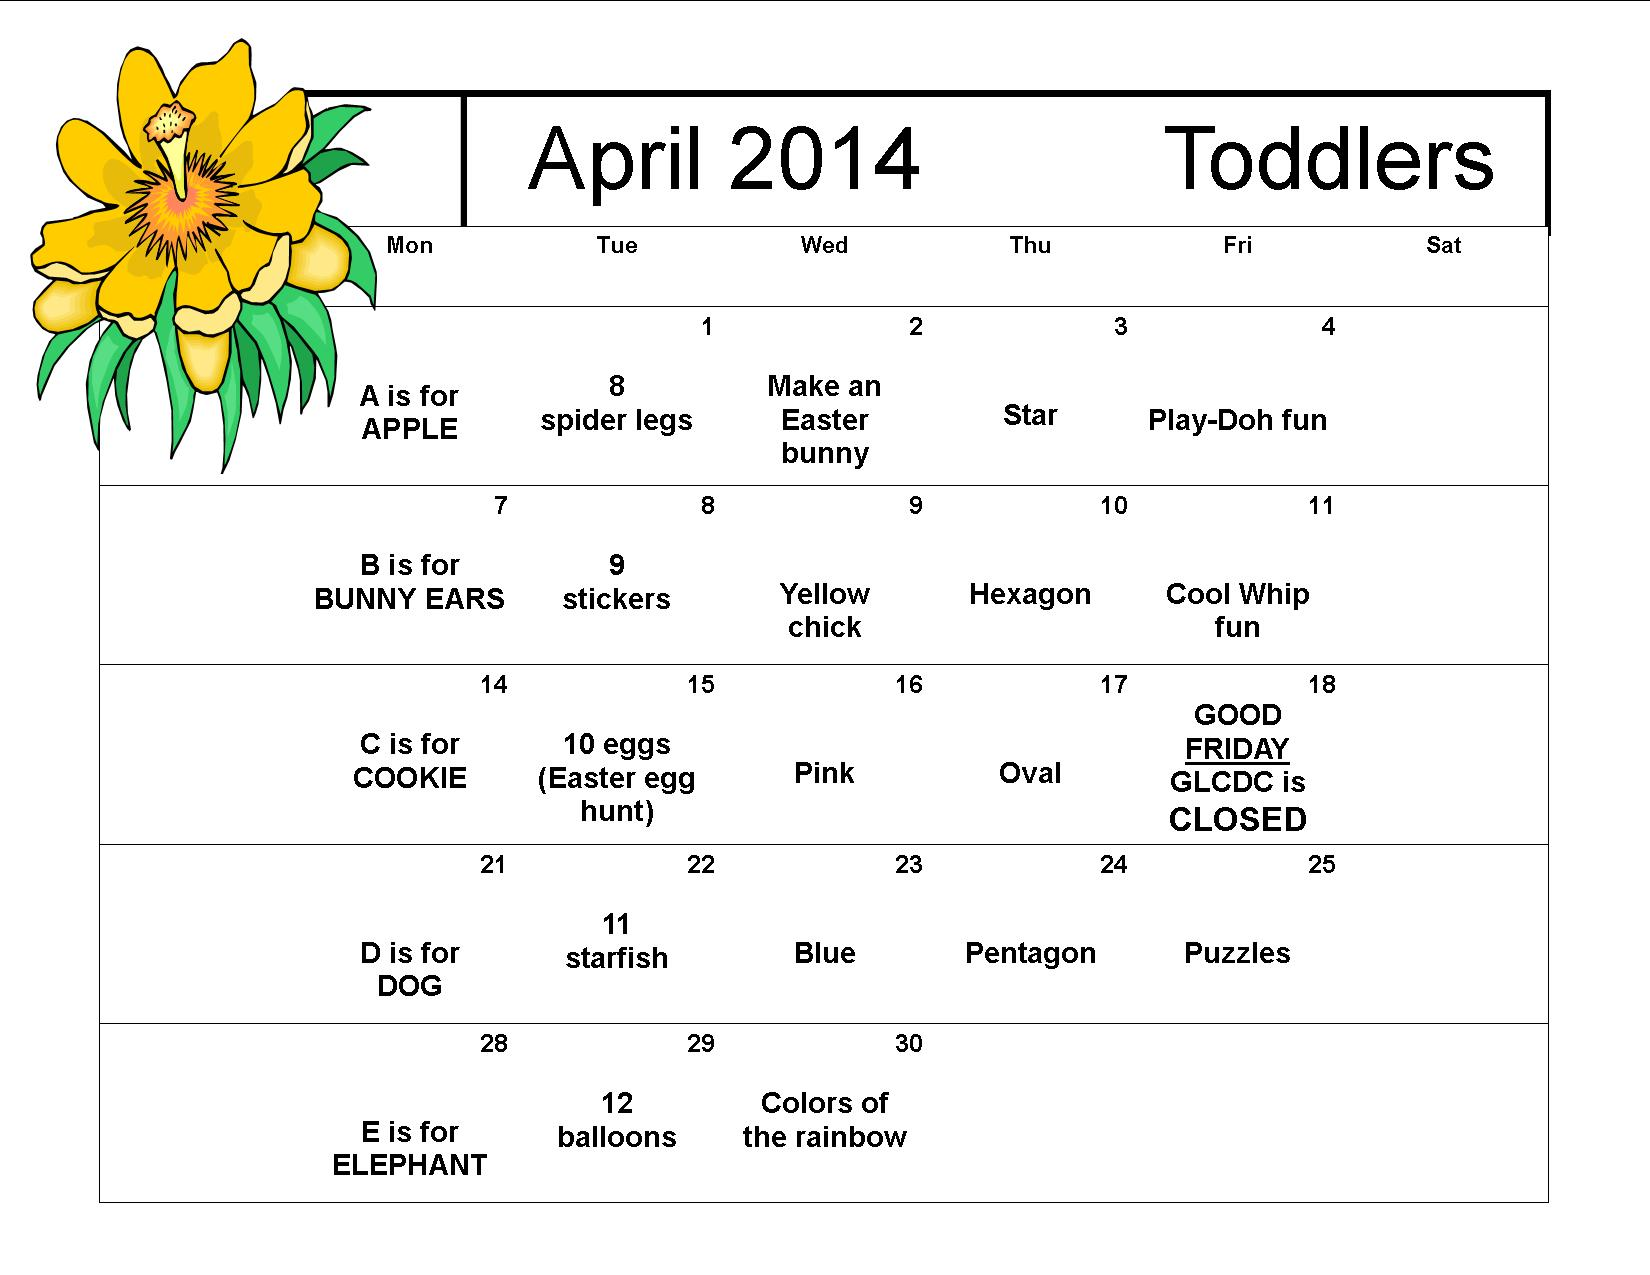 April 2014 Toddlers